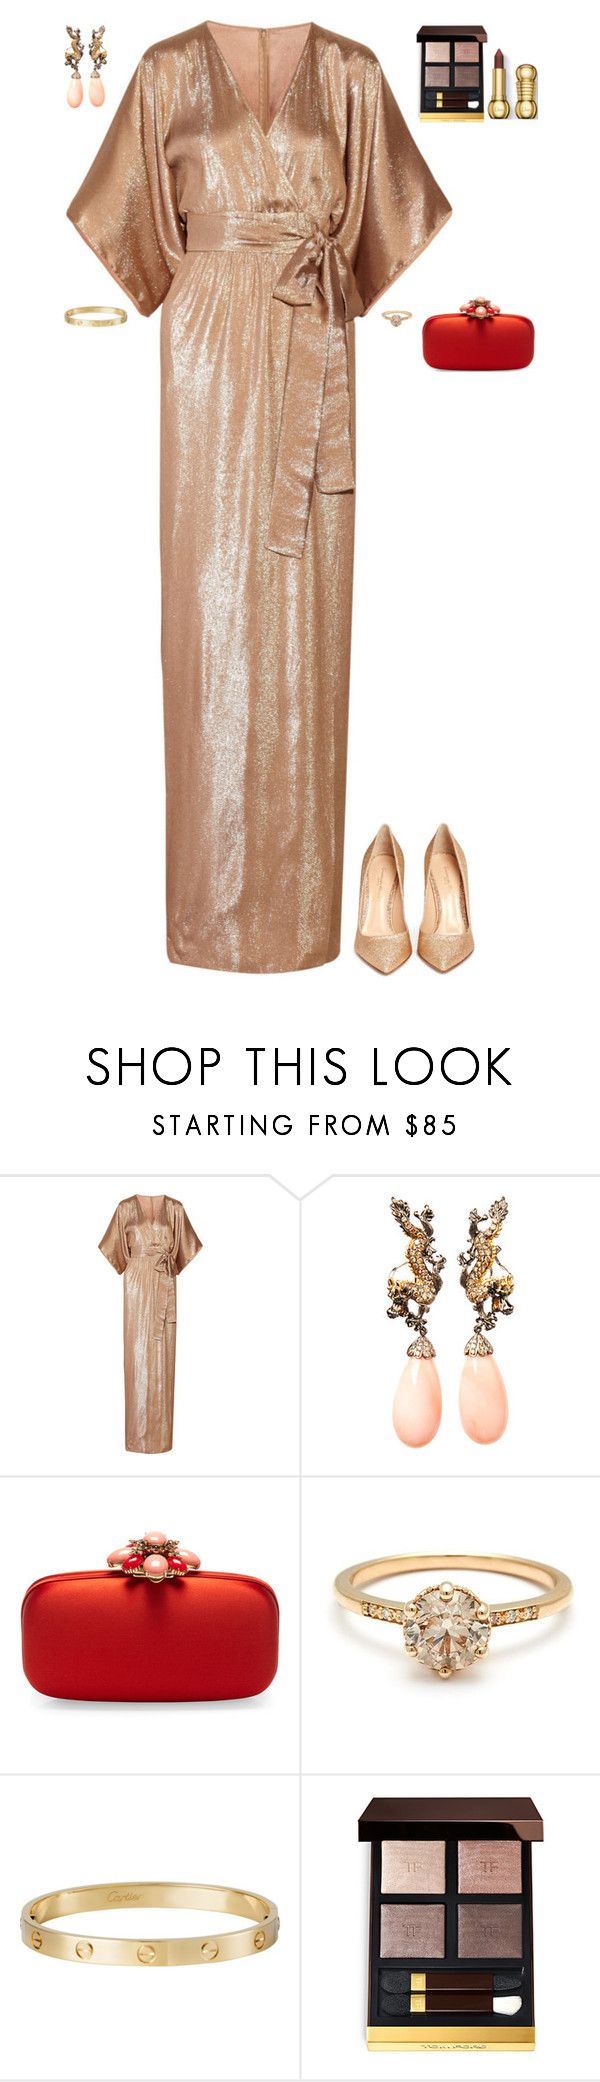 """""""Party in Miami Beach"""" by stylev ❤ liked on Polyvore featuring Gucci, Lydia Courteille, Oscar de la Renta, Cartier, Tom Ford and Gianvito Rossi"""